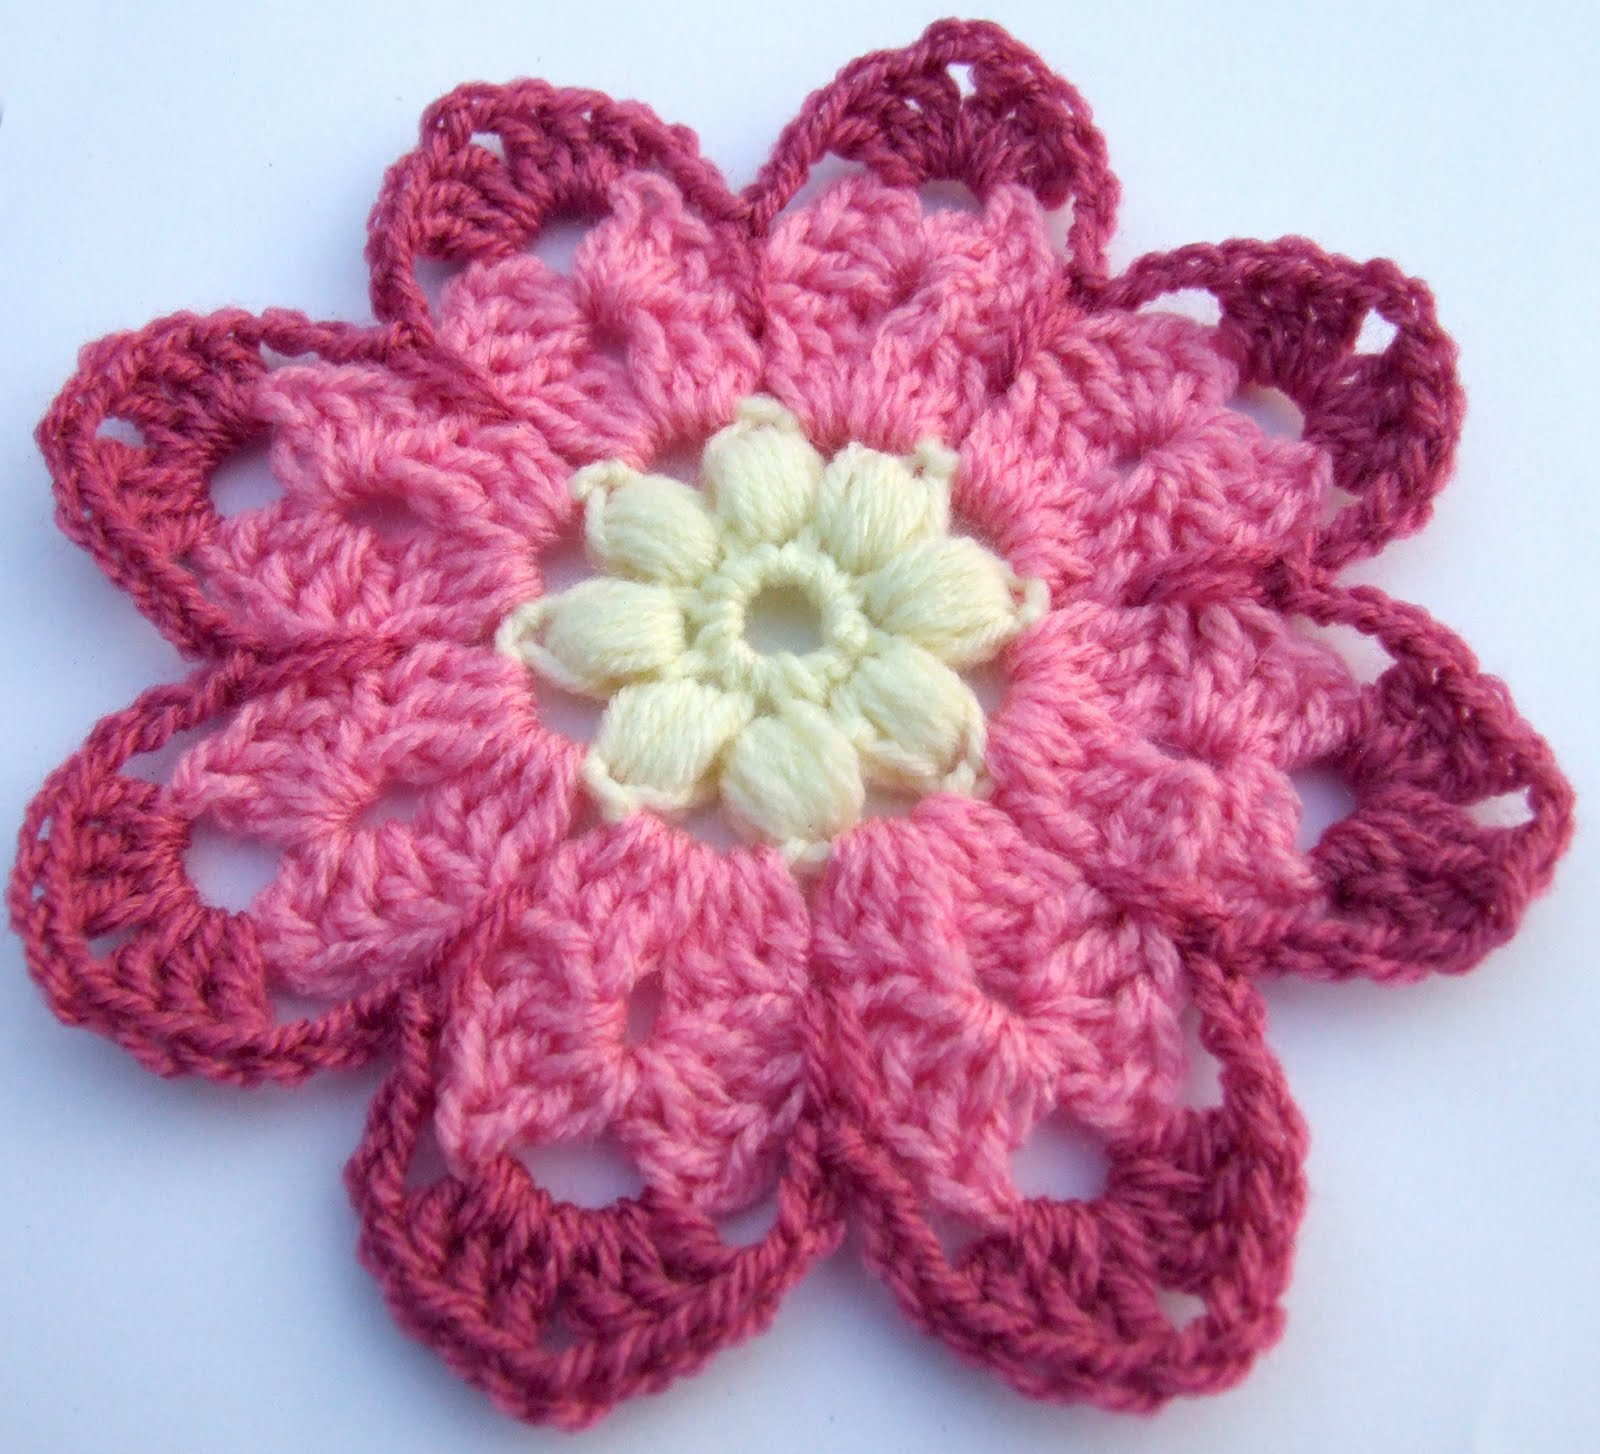 Free Crochet Pattern - Octagon Flower - leonie morgan